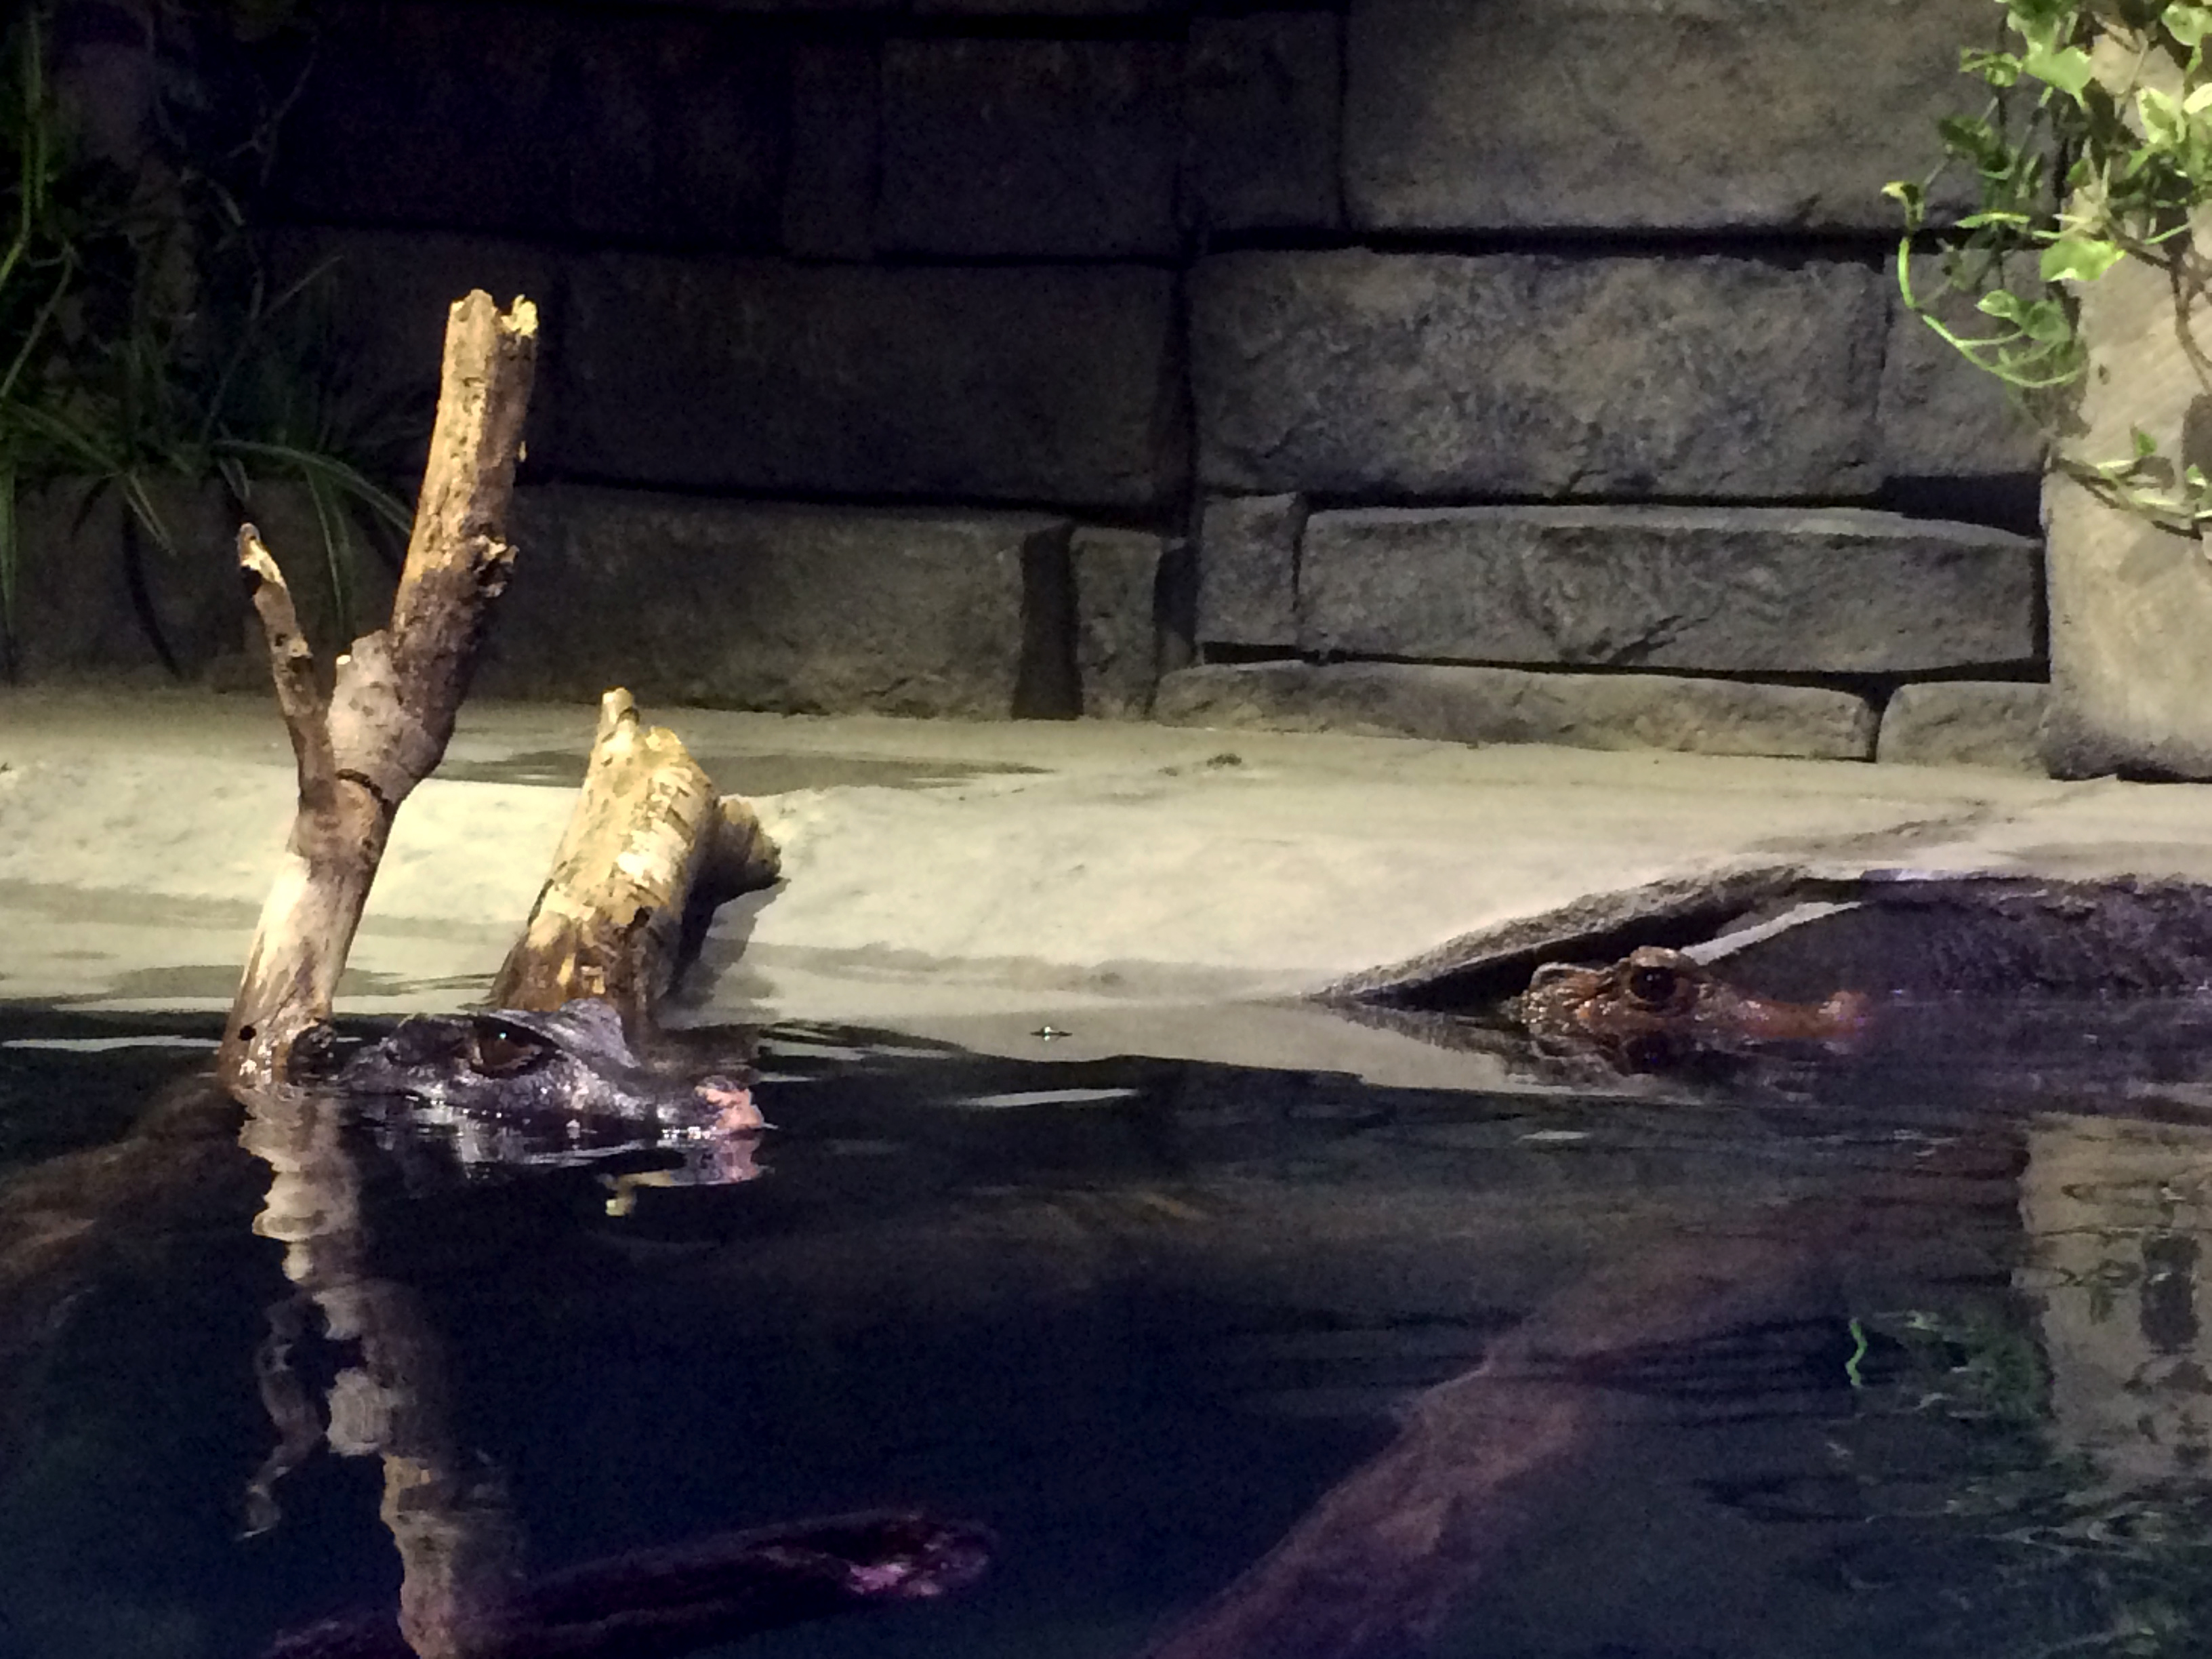 Skully and Mulder, Cuvier's dwarf caimans